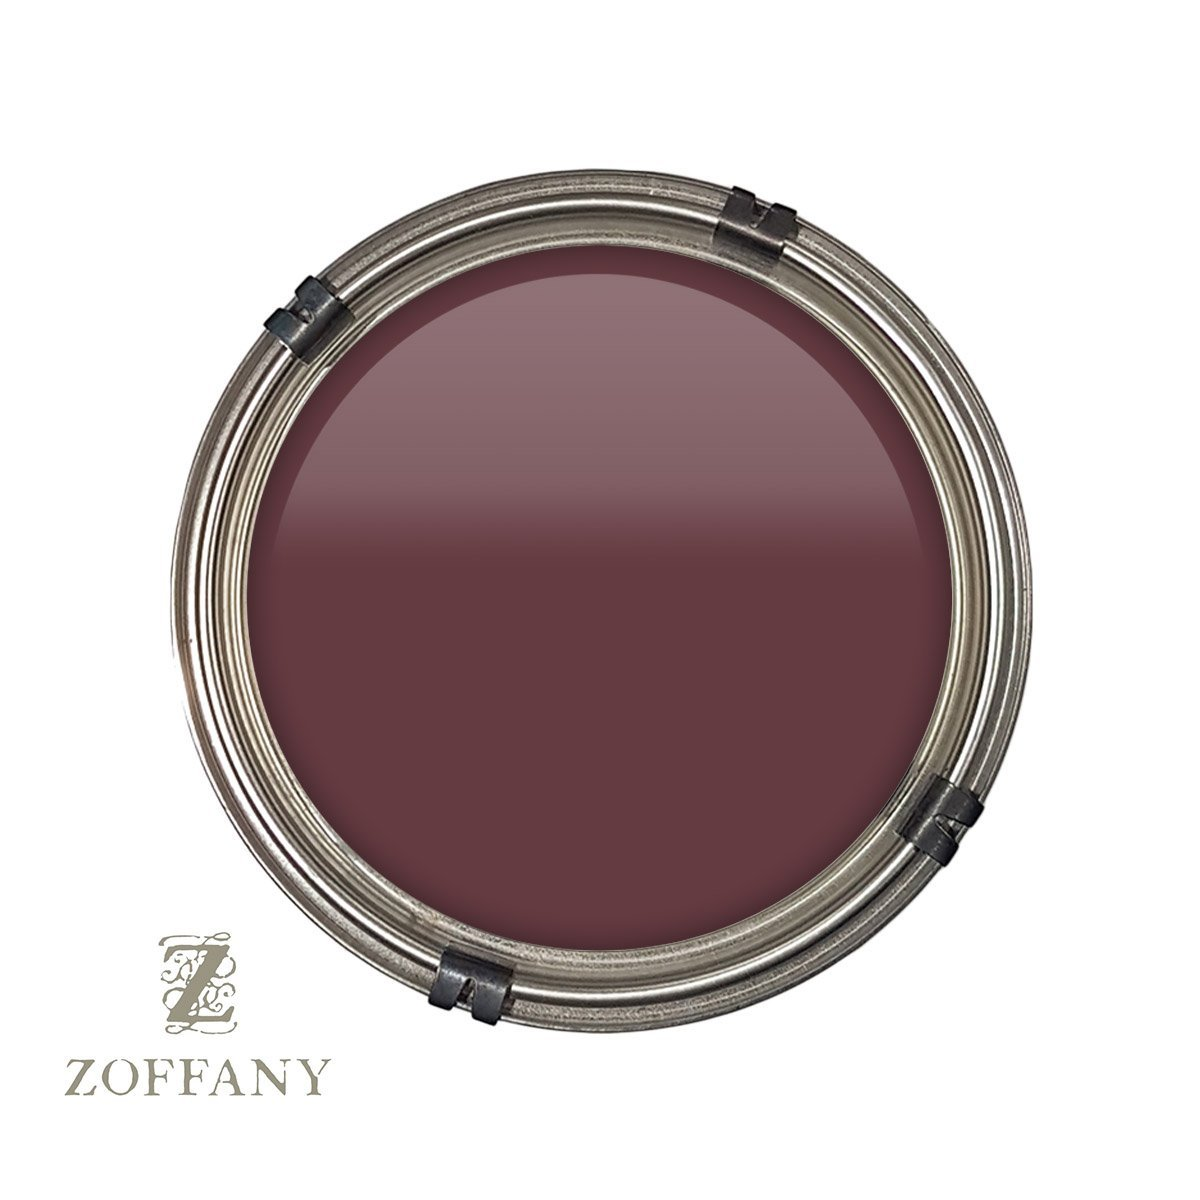 Farrow And Ball Bordeaux bordeaux zoffany paint